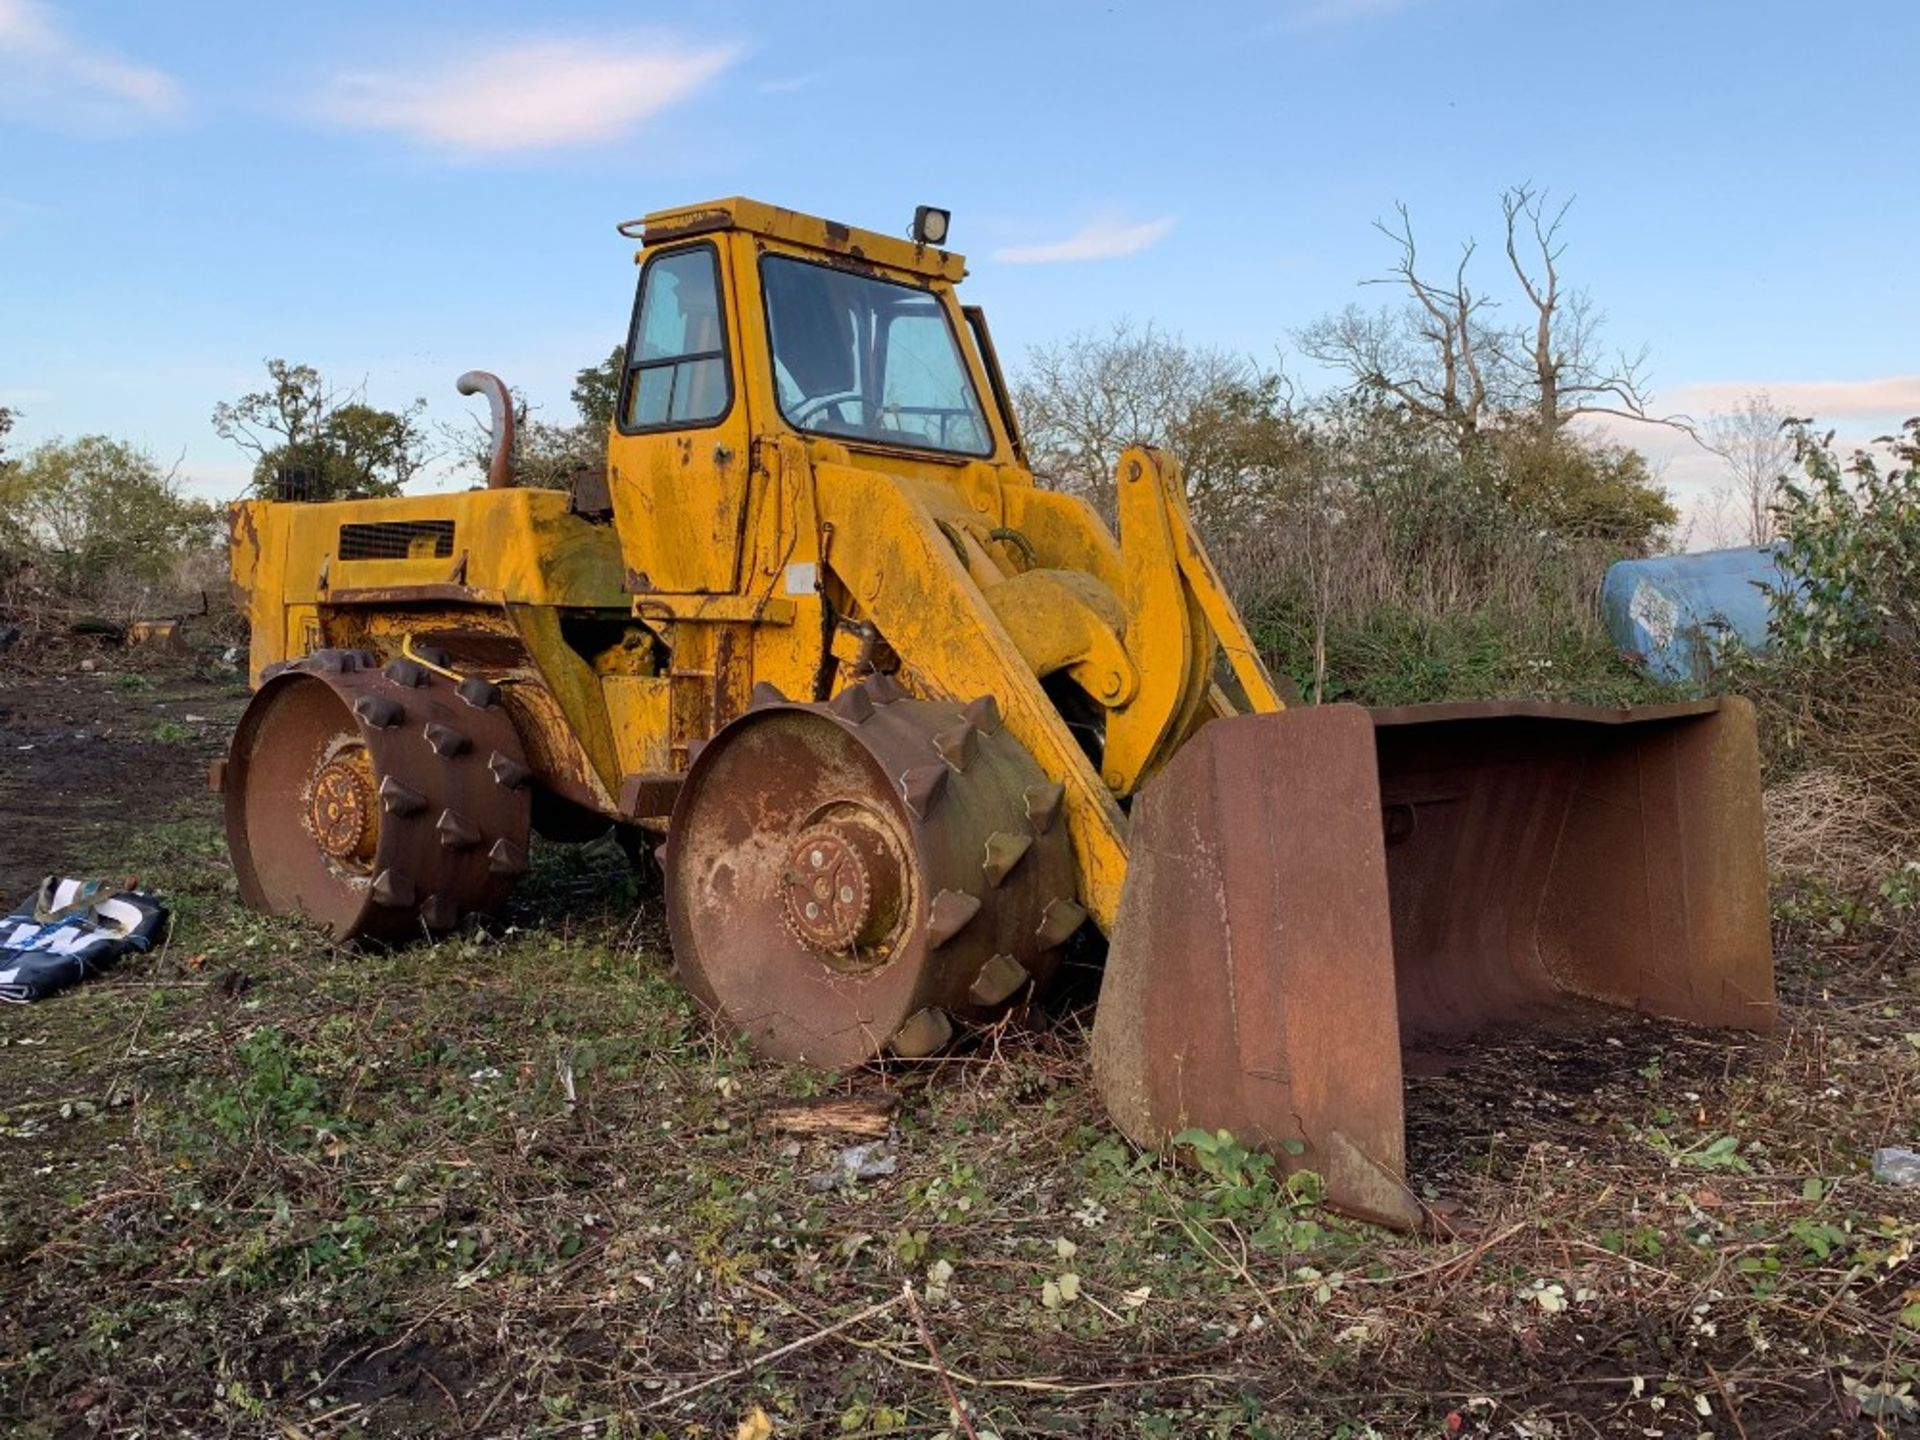 Lot 78 - JCB 428 compactor - steel wheels with spikes - currently non-runner.